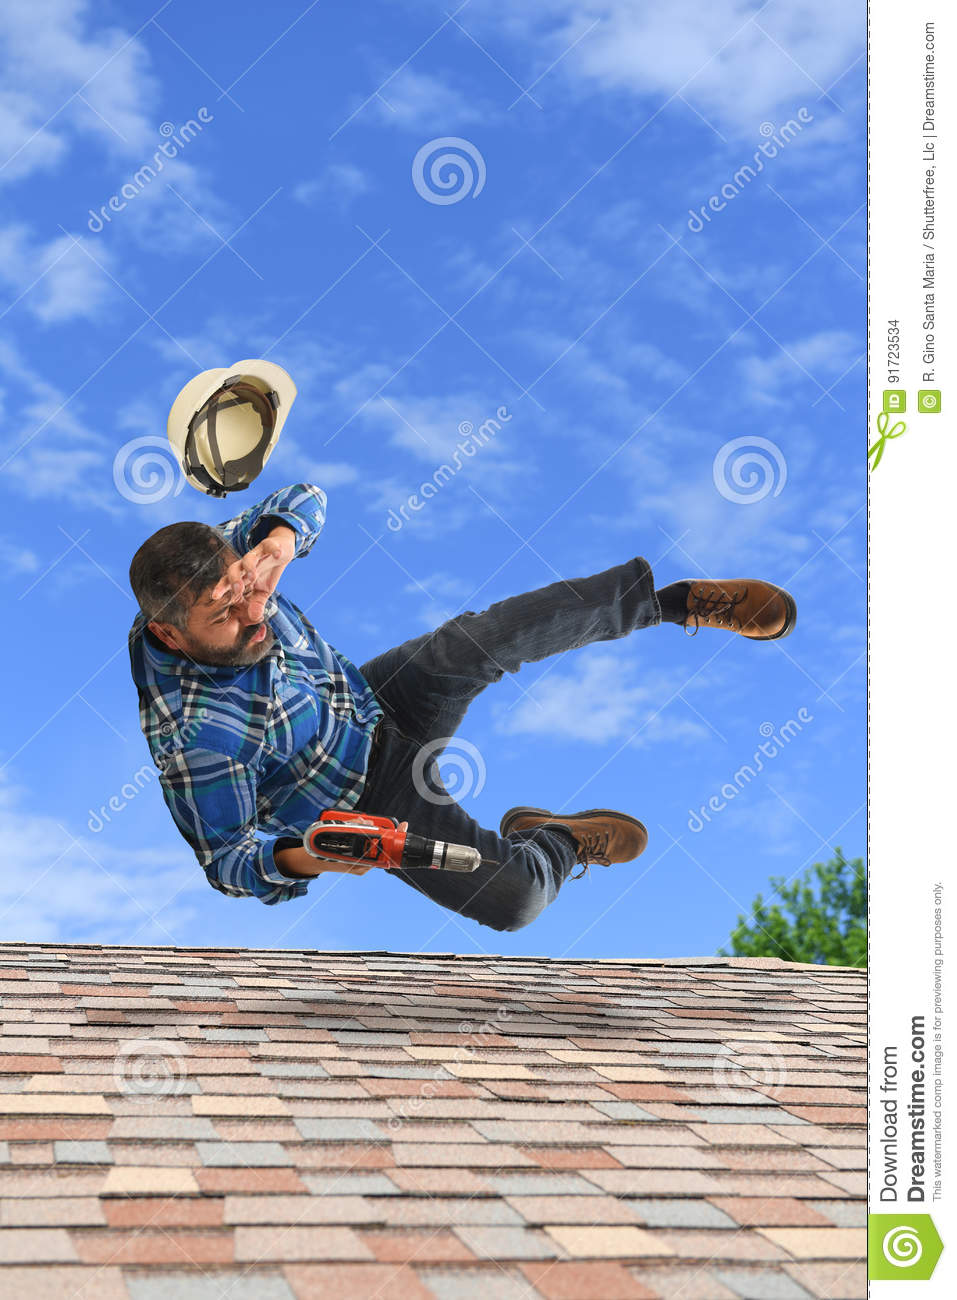 Man Loosing Balance on Top of Roof